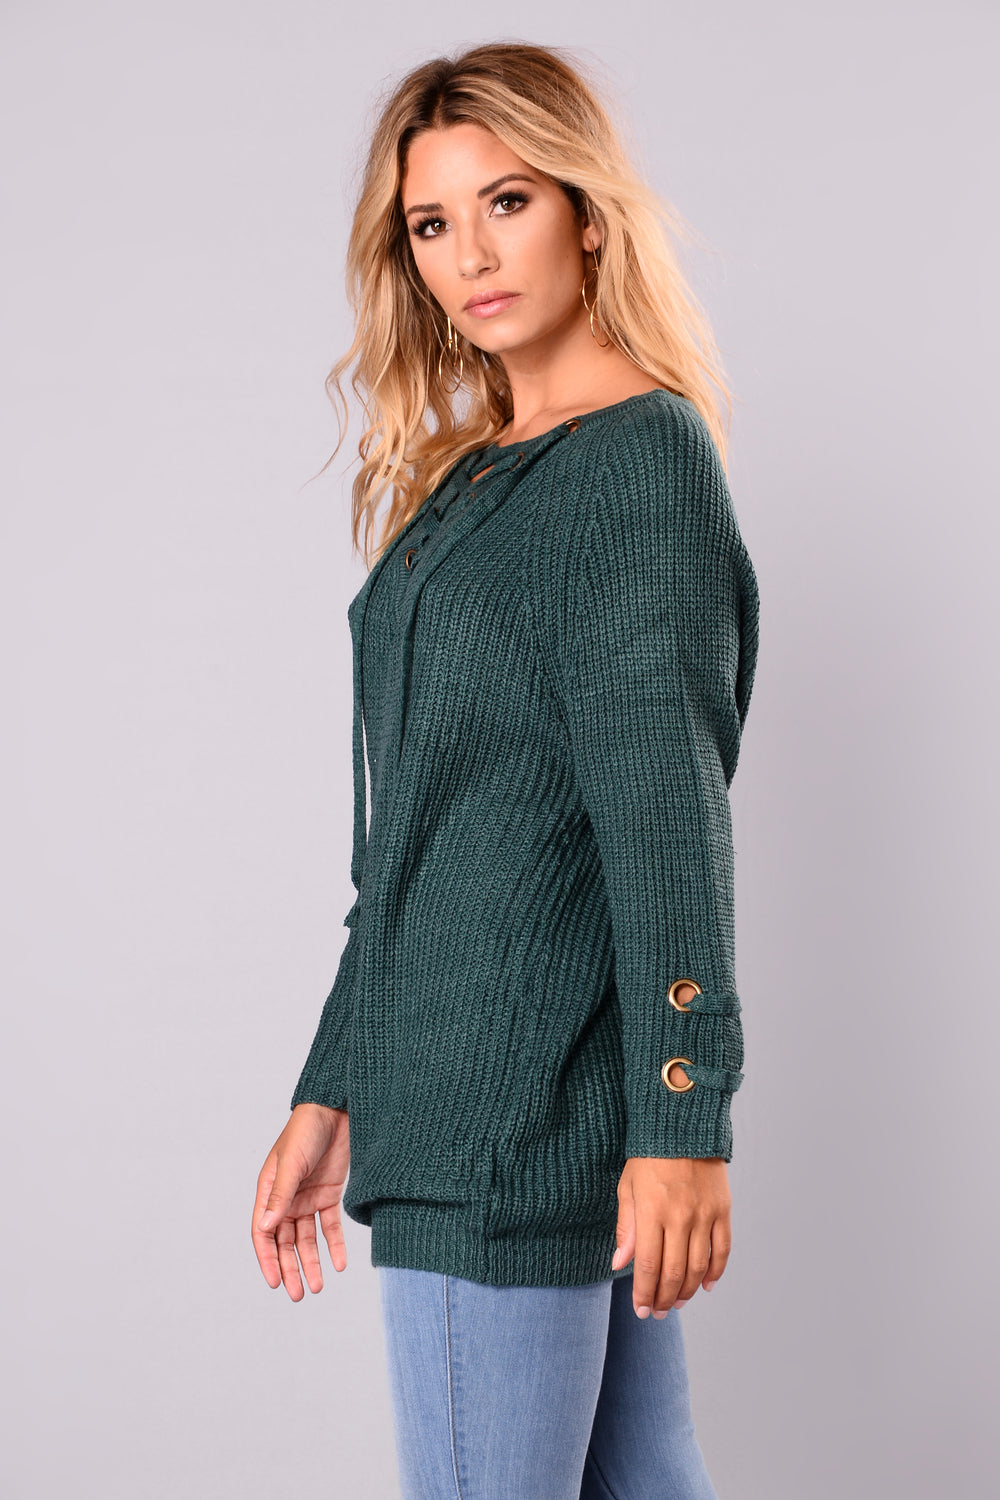 Lake Boat Sweater - Teal